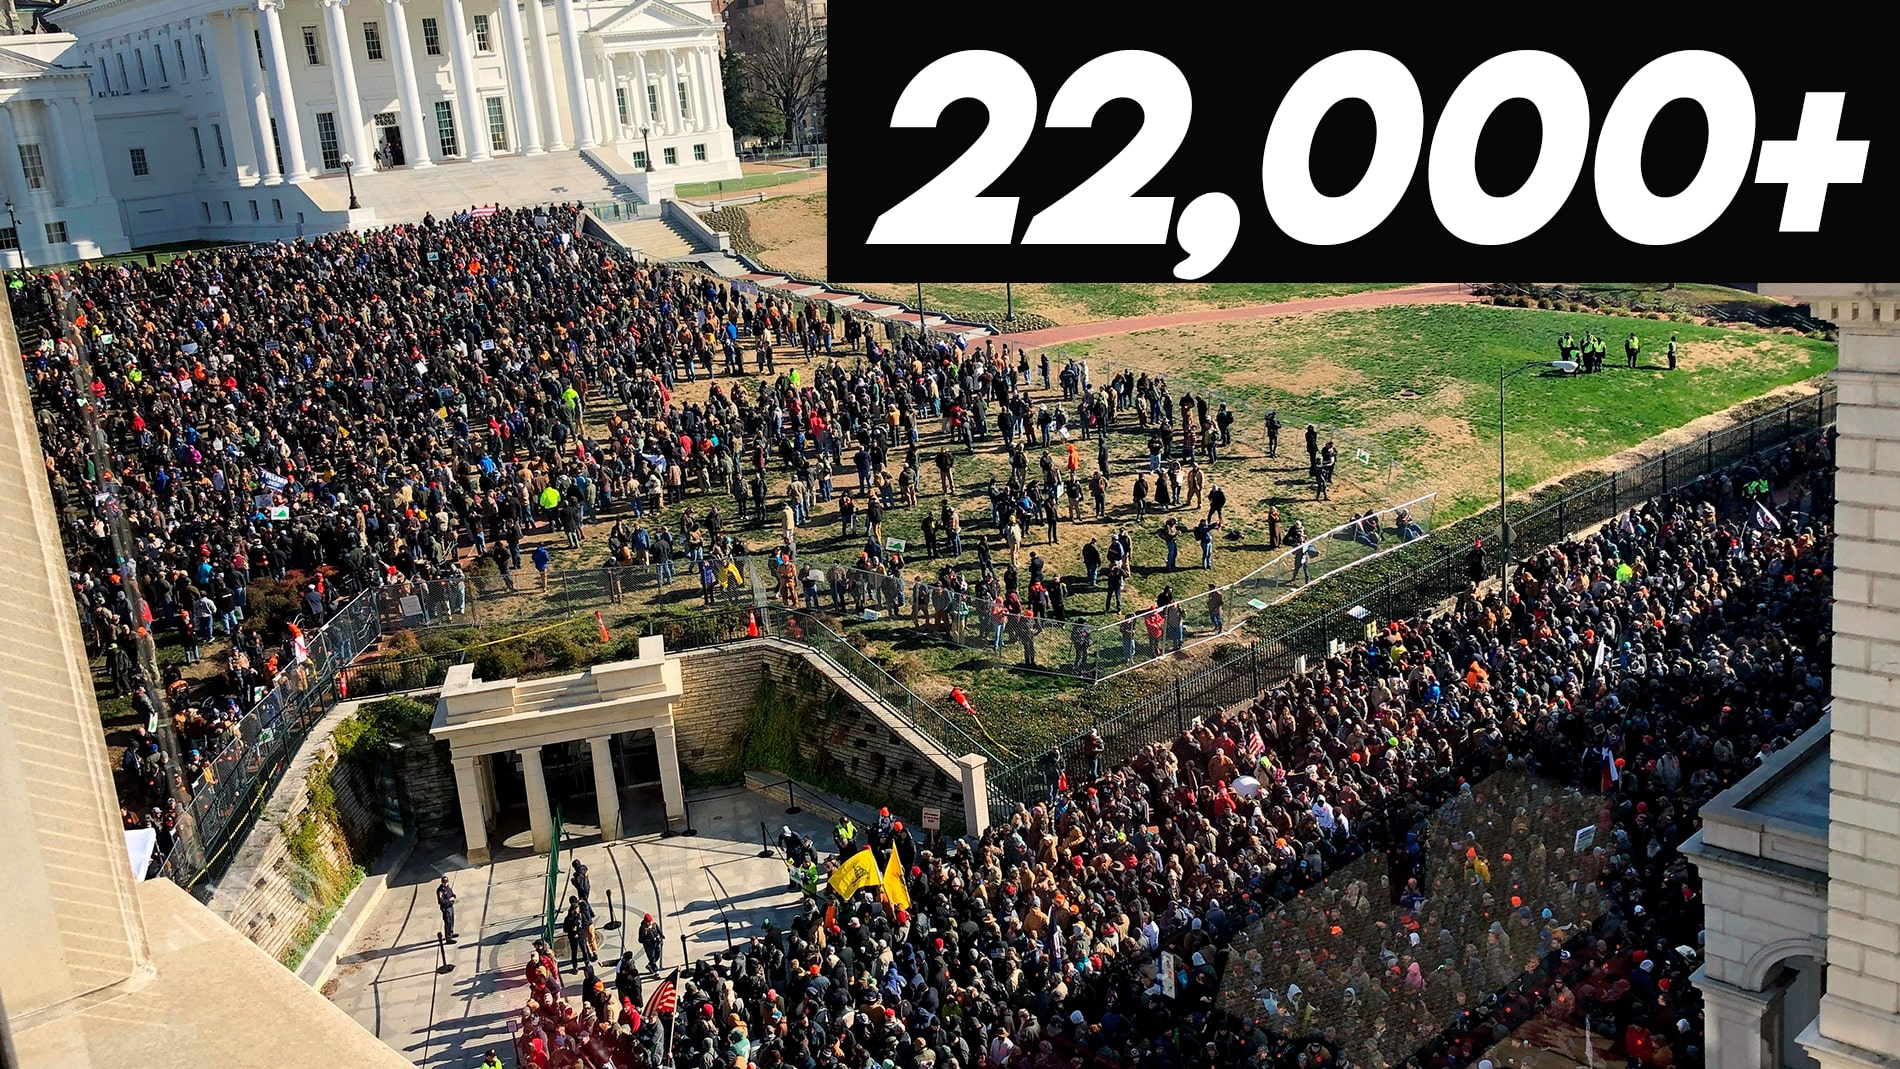 OFFICIAL NUMBERS: 22k+ Virginians rallied to support the Second Amendment, 1 arrest